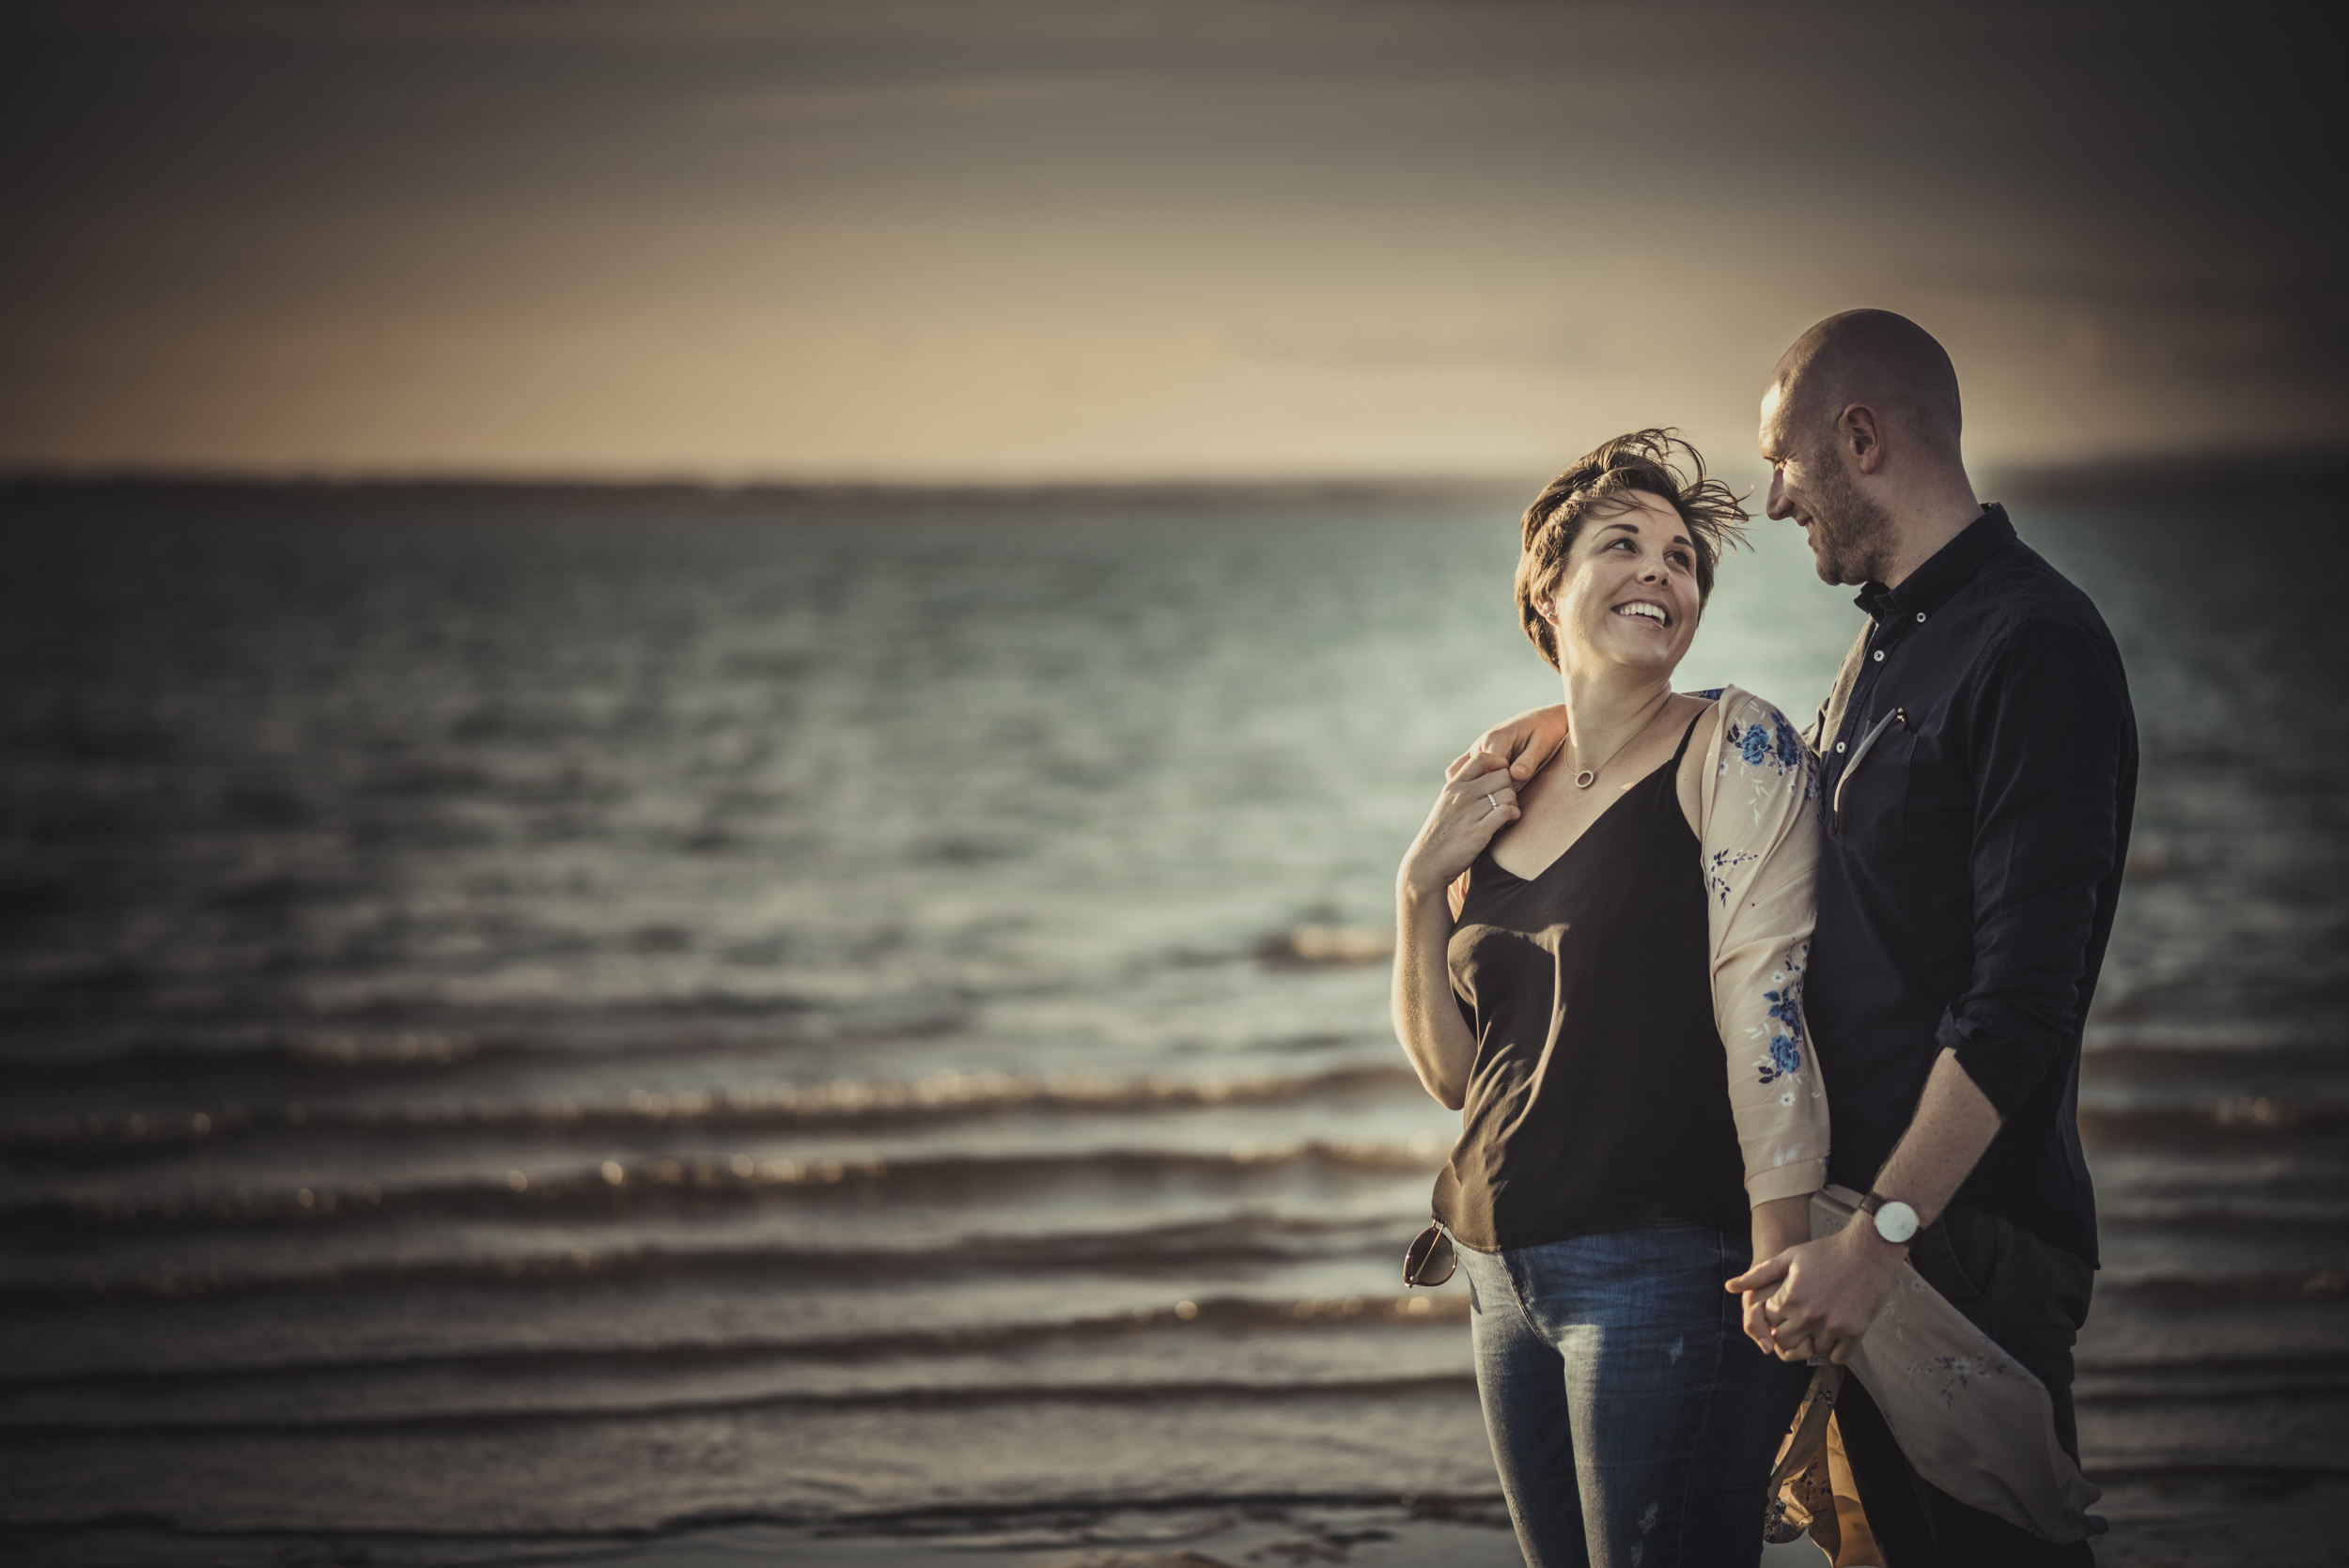 Tara-and-Simon-Engagement-Session- West-Wittering-Beach-West-Sussex-Manu-Mendoza-Wedding-Photography-040.jpg